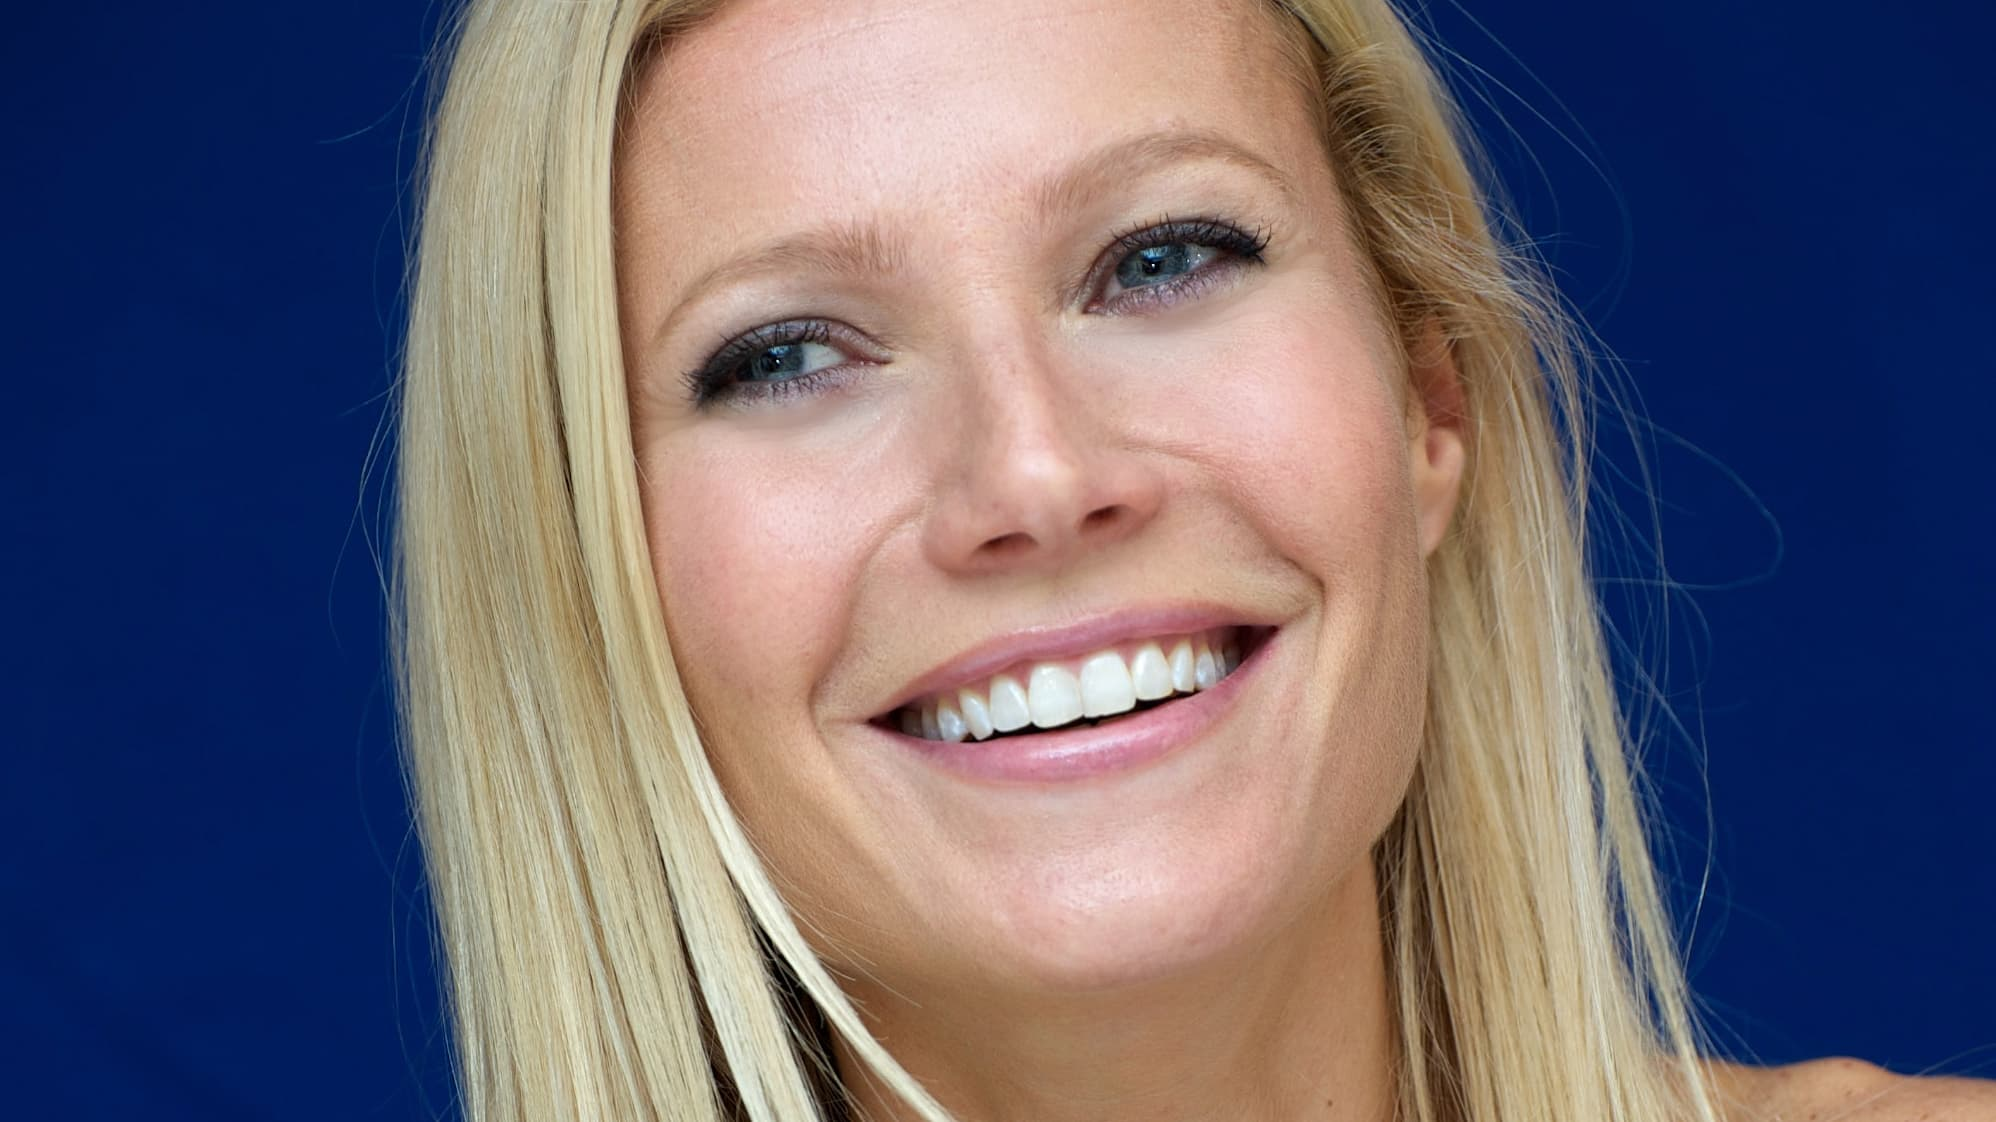 Gwyneth Paltrow wallpapers High Quality Download